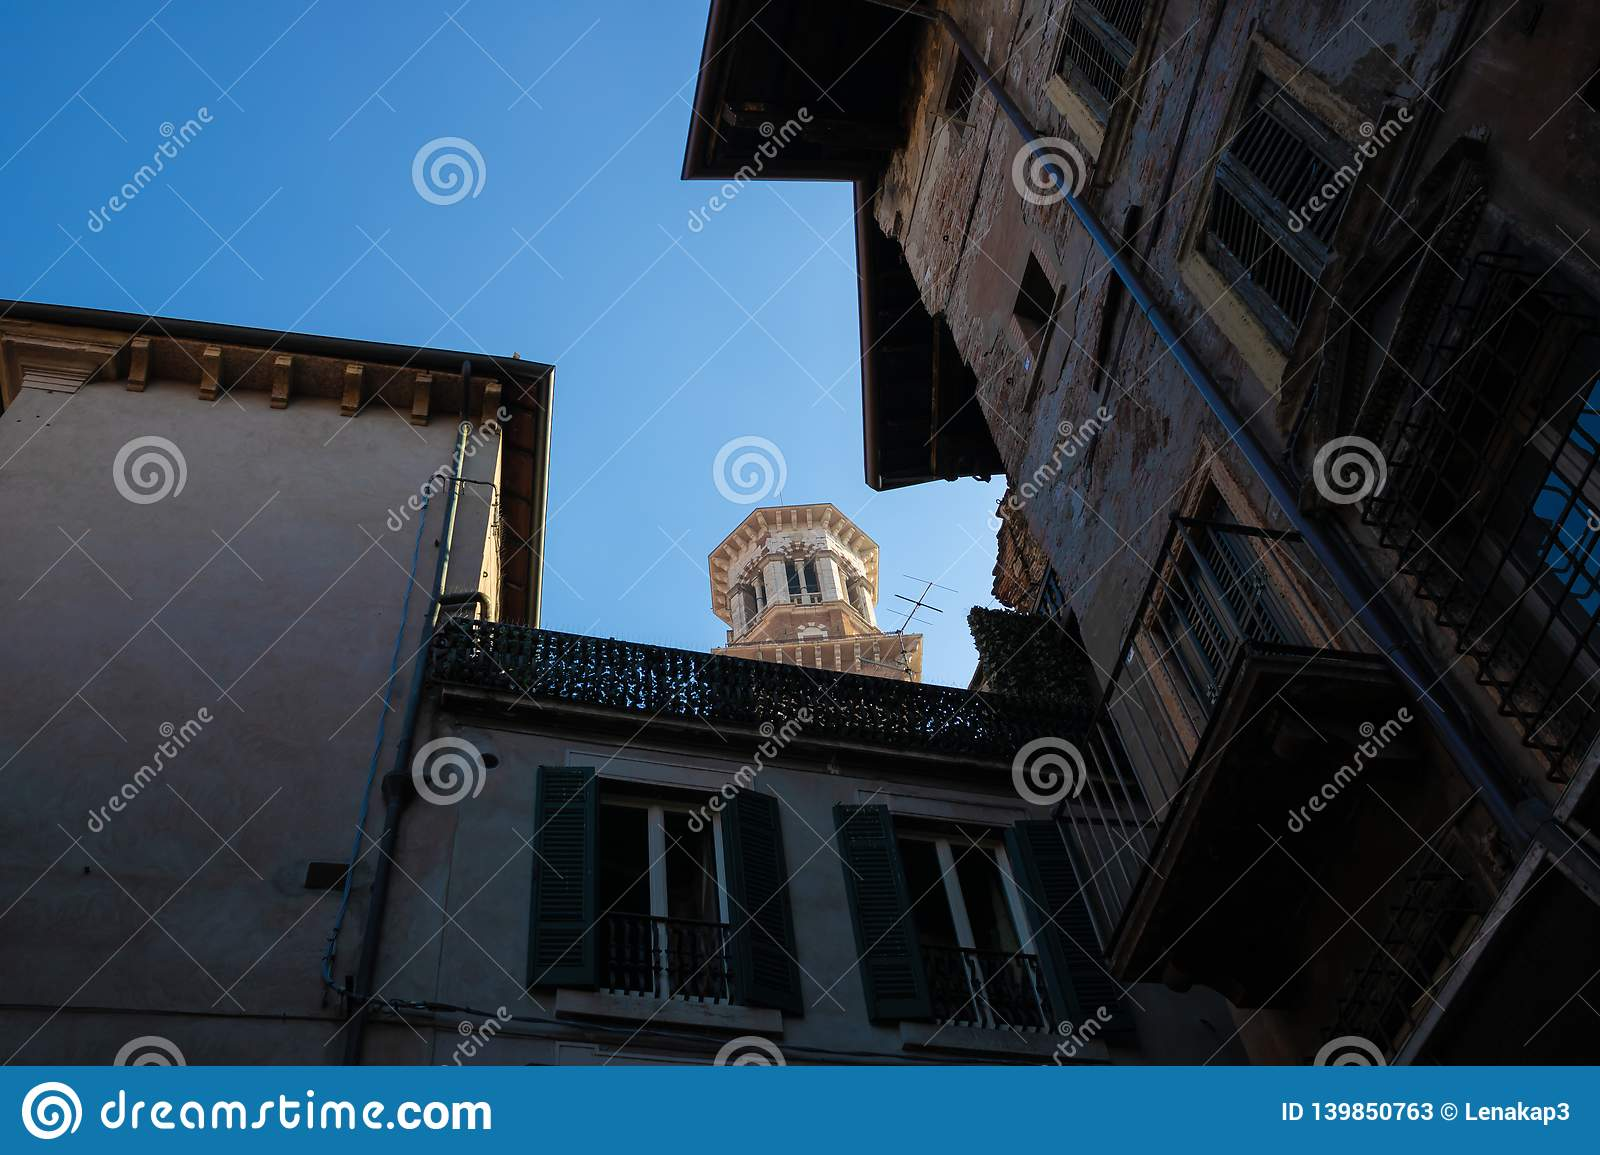 The view at Torre dei Lamberti from a street, Verona, Italy - Image